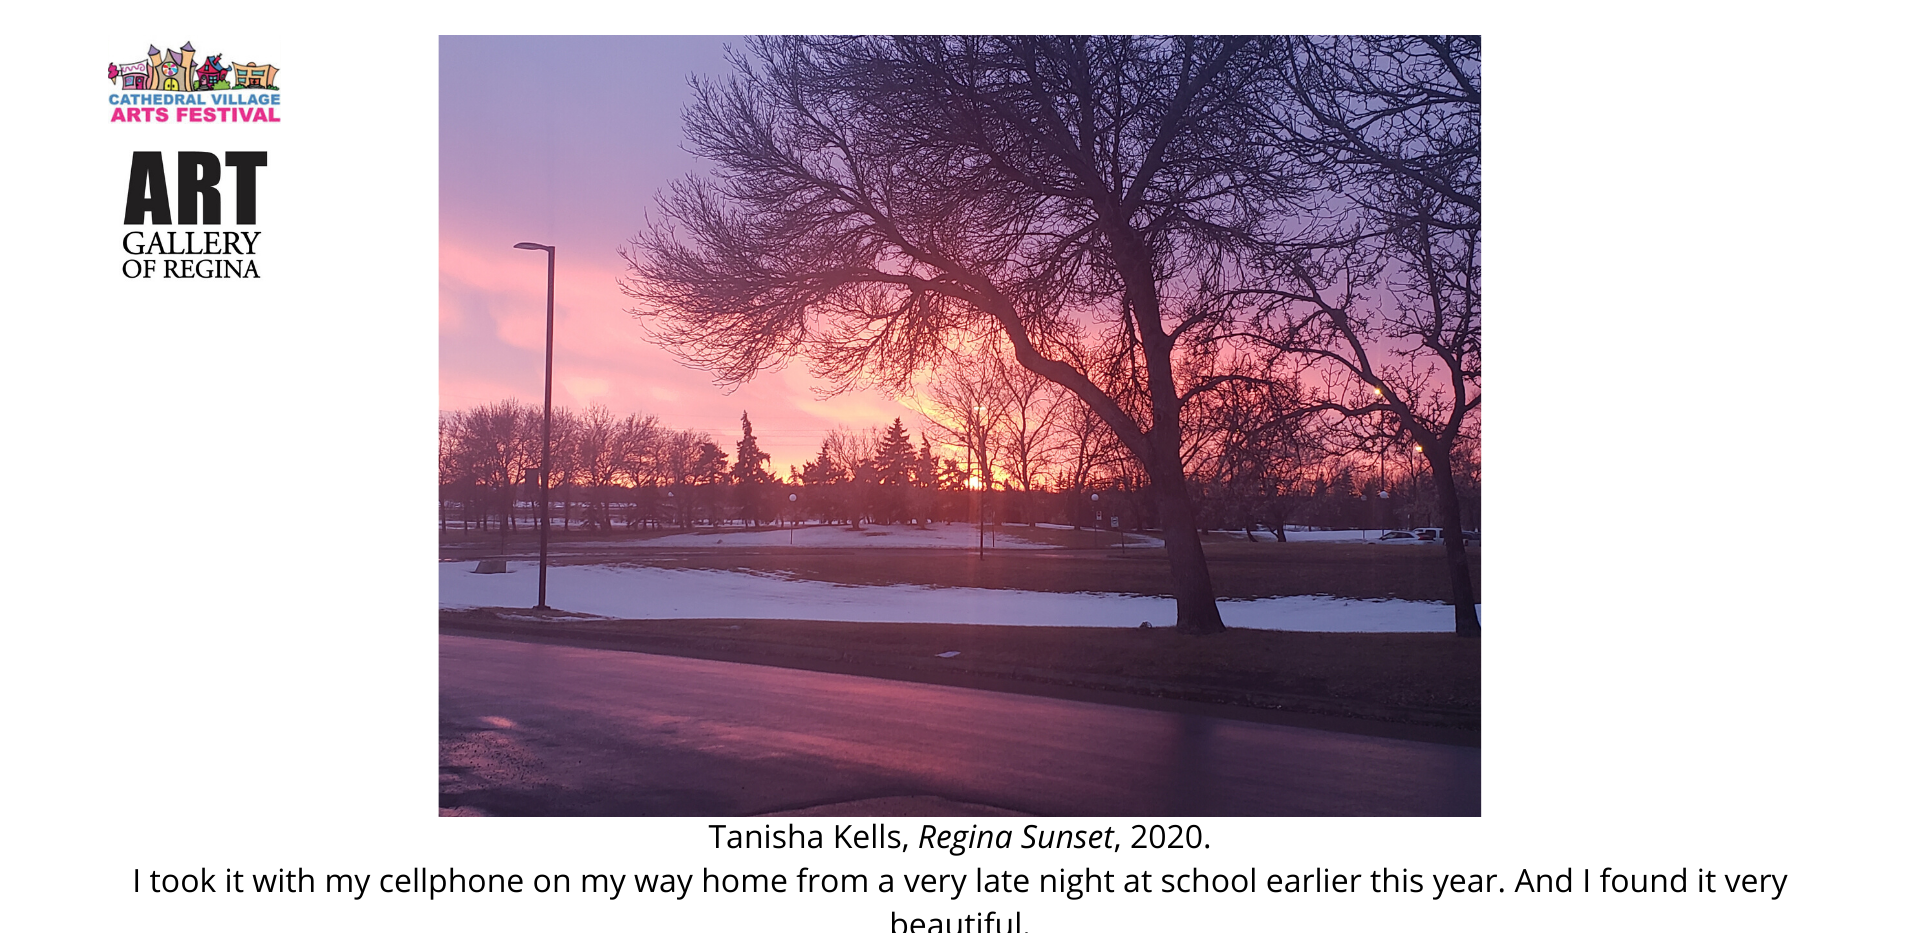 Tanisha Kells, Regina Sunset, 2020.